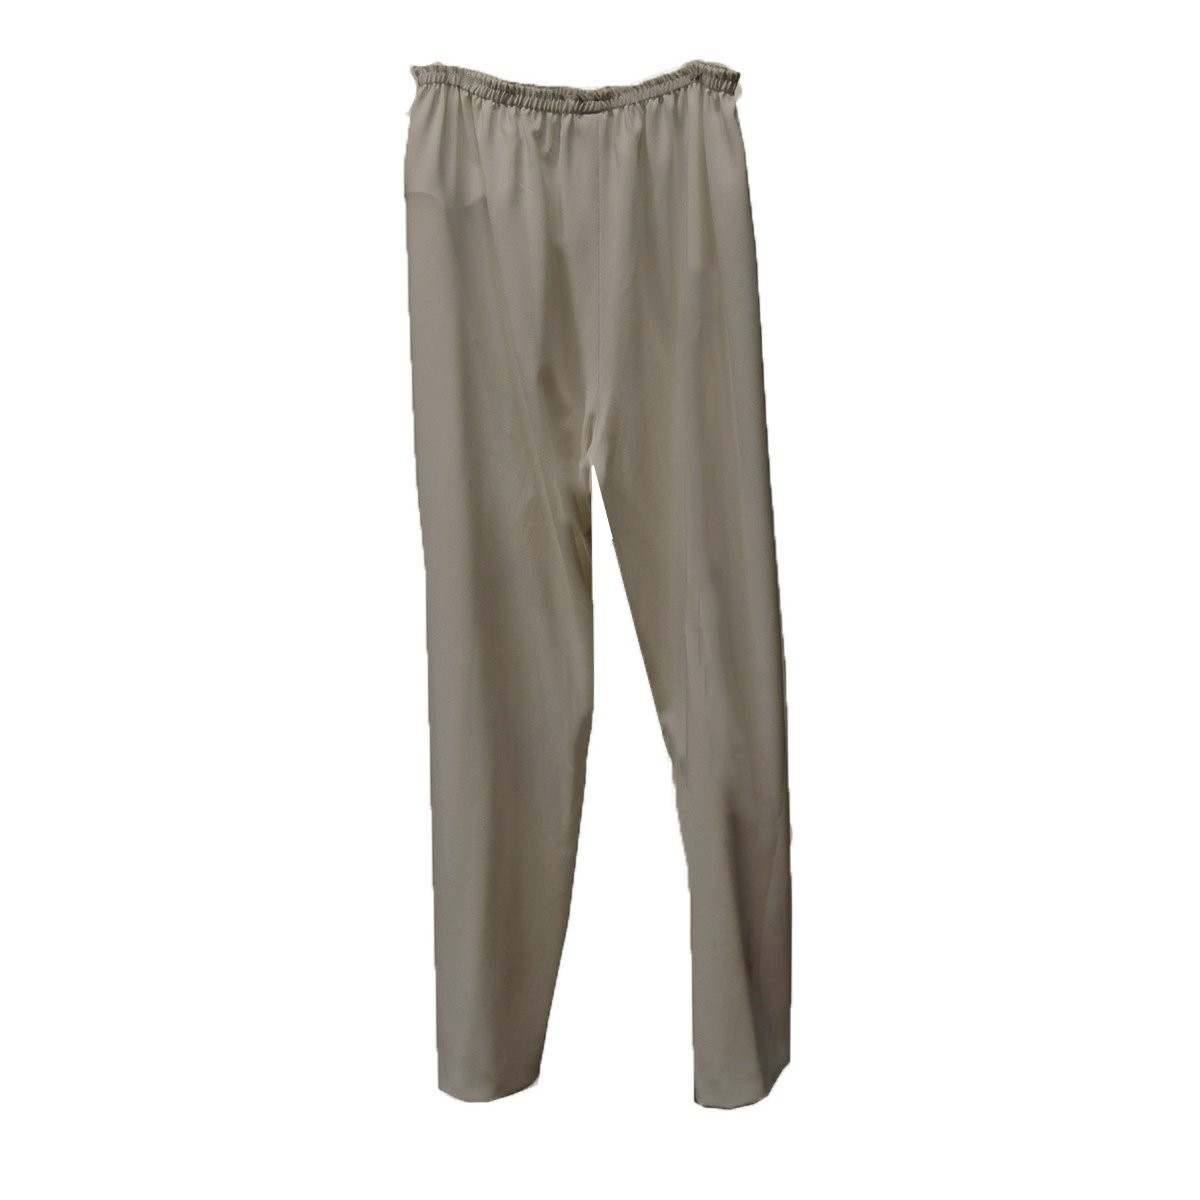 Tan Straight Leg Pants 2, Elastic Waist, XL